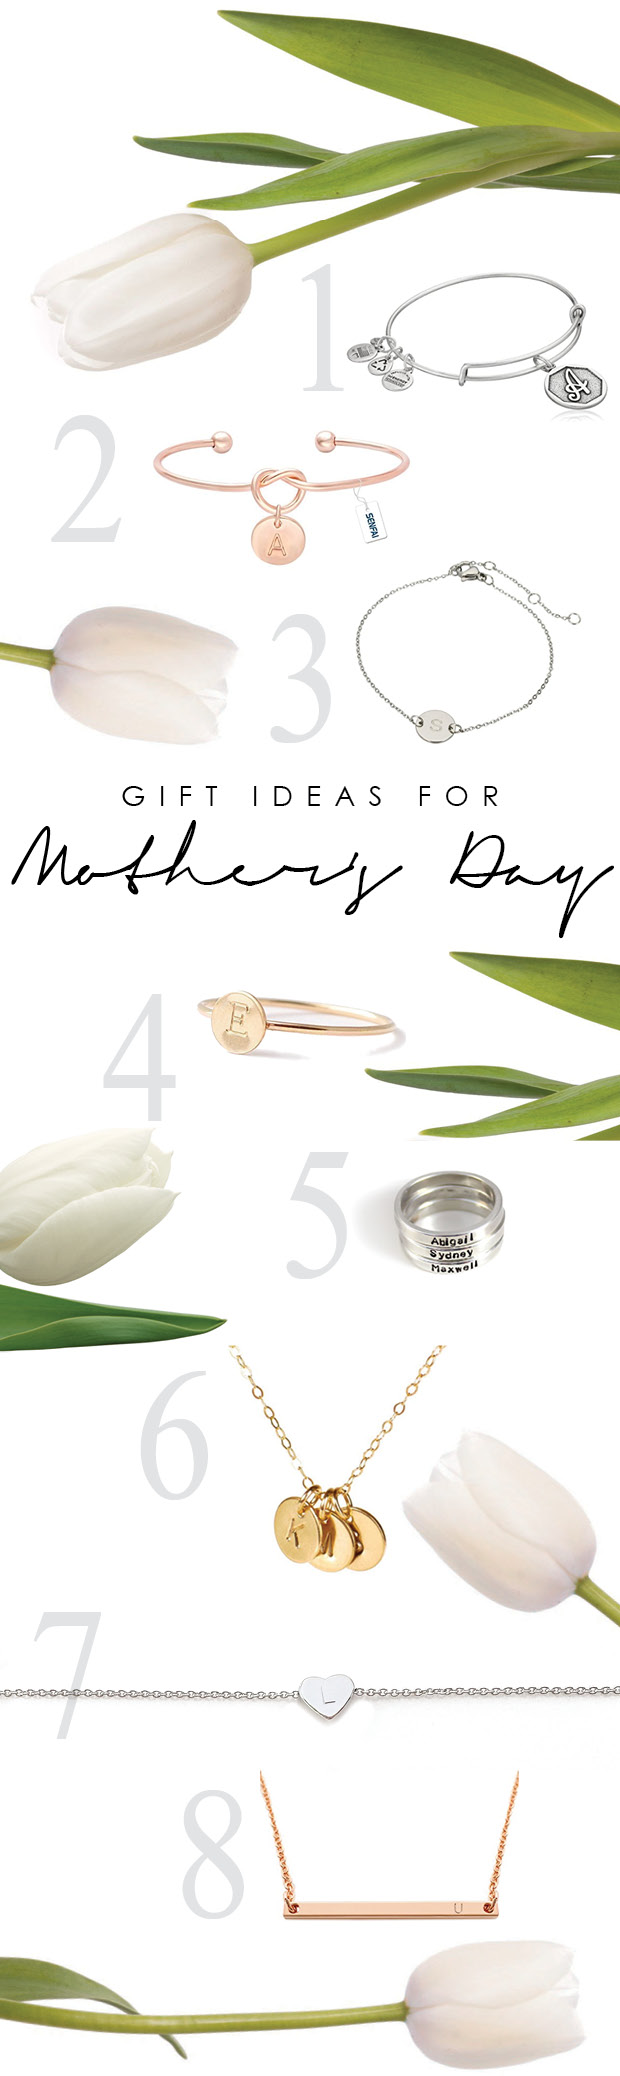 Gift ideas for mother's day - affordable initial jewelry that can be used for children's or grandchildren's names (and some have 2-day shipping!)